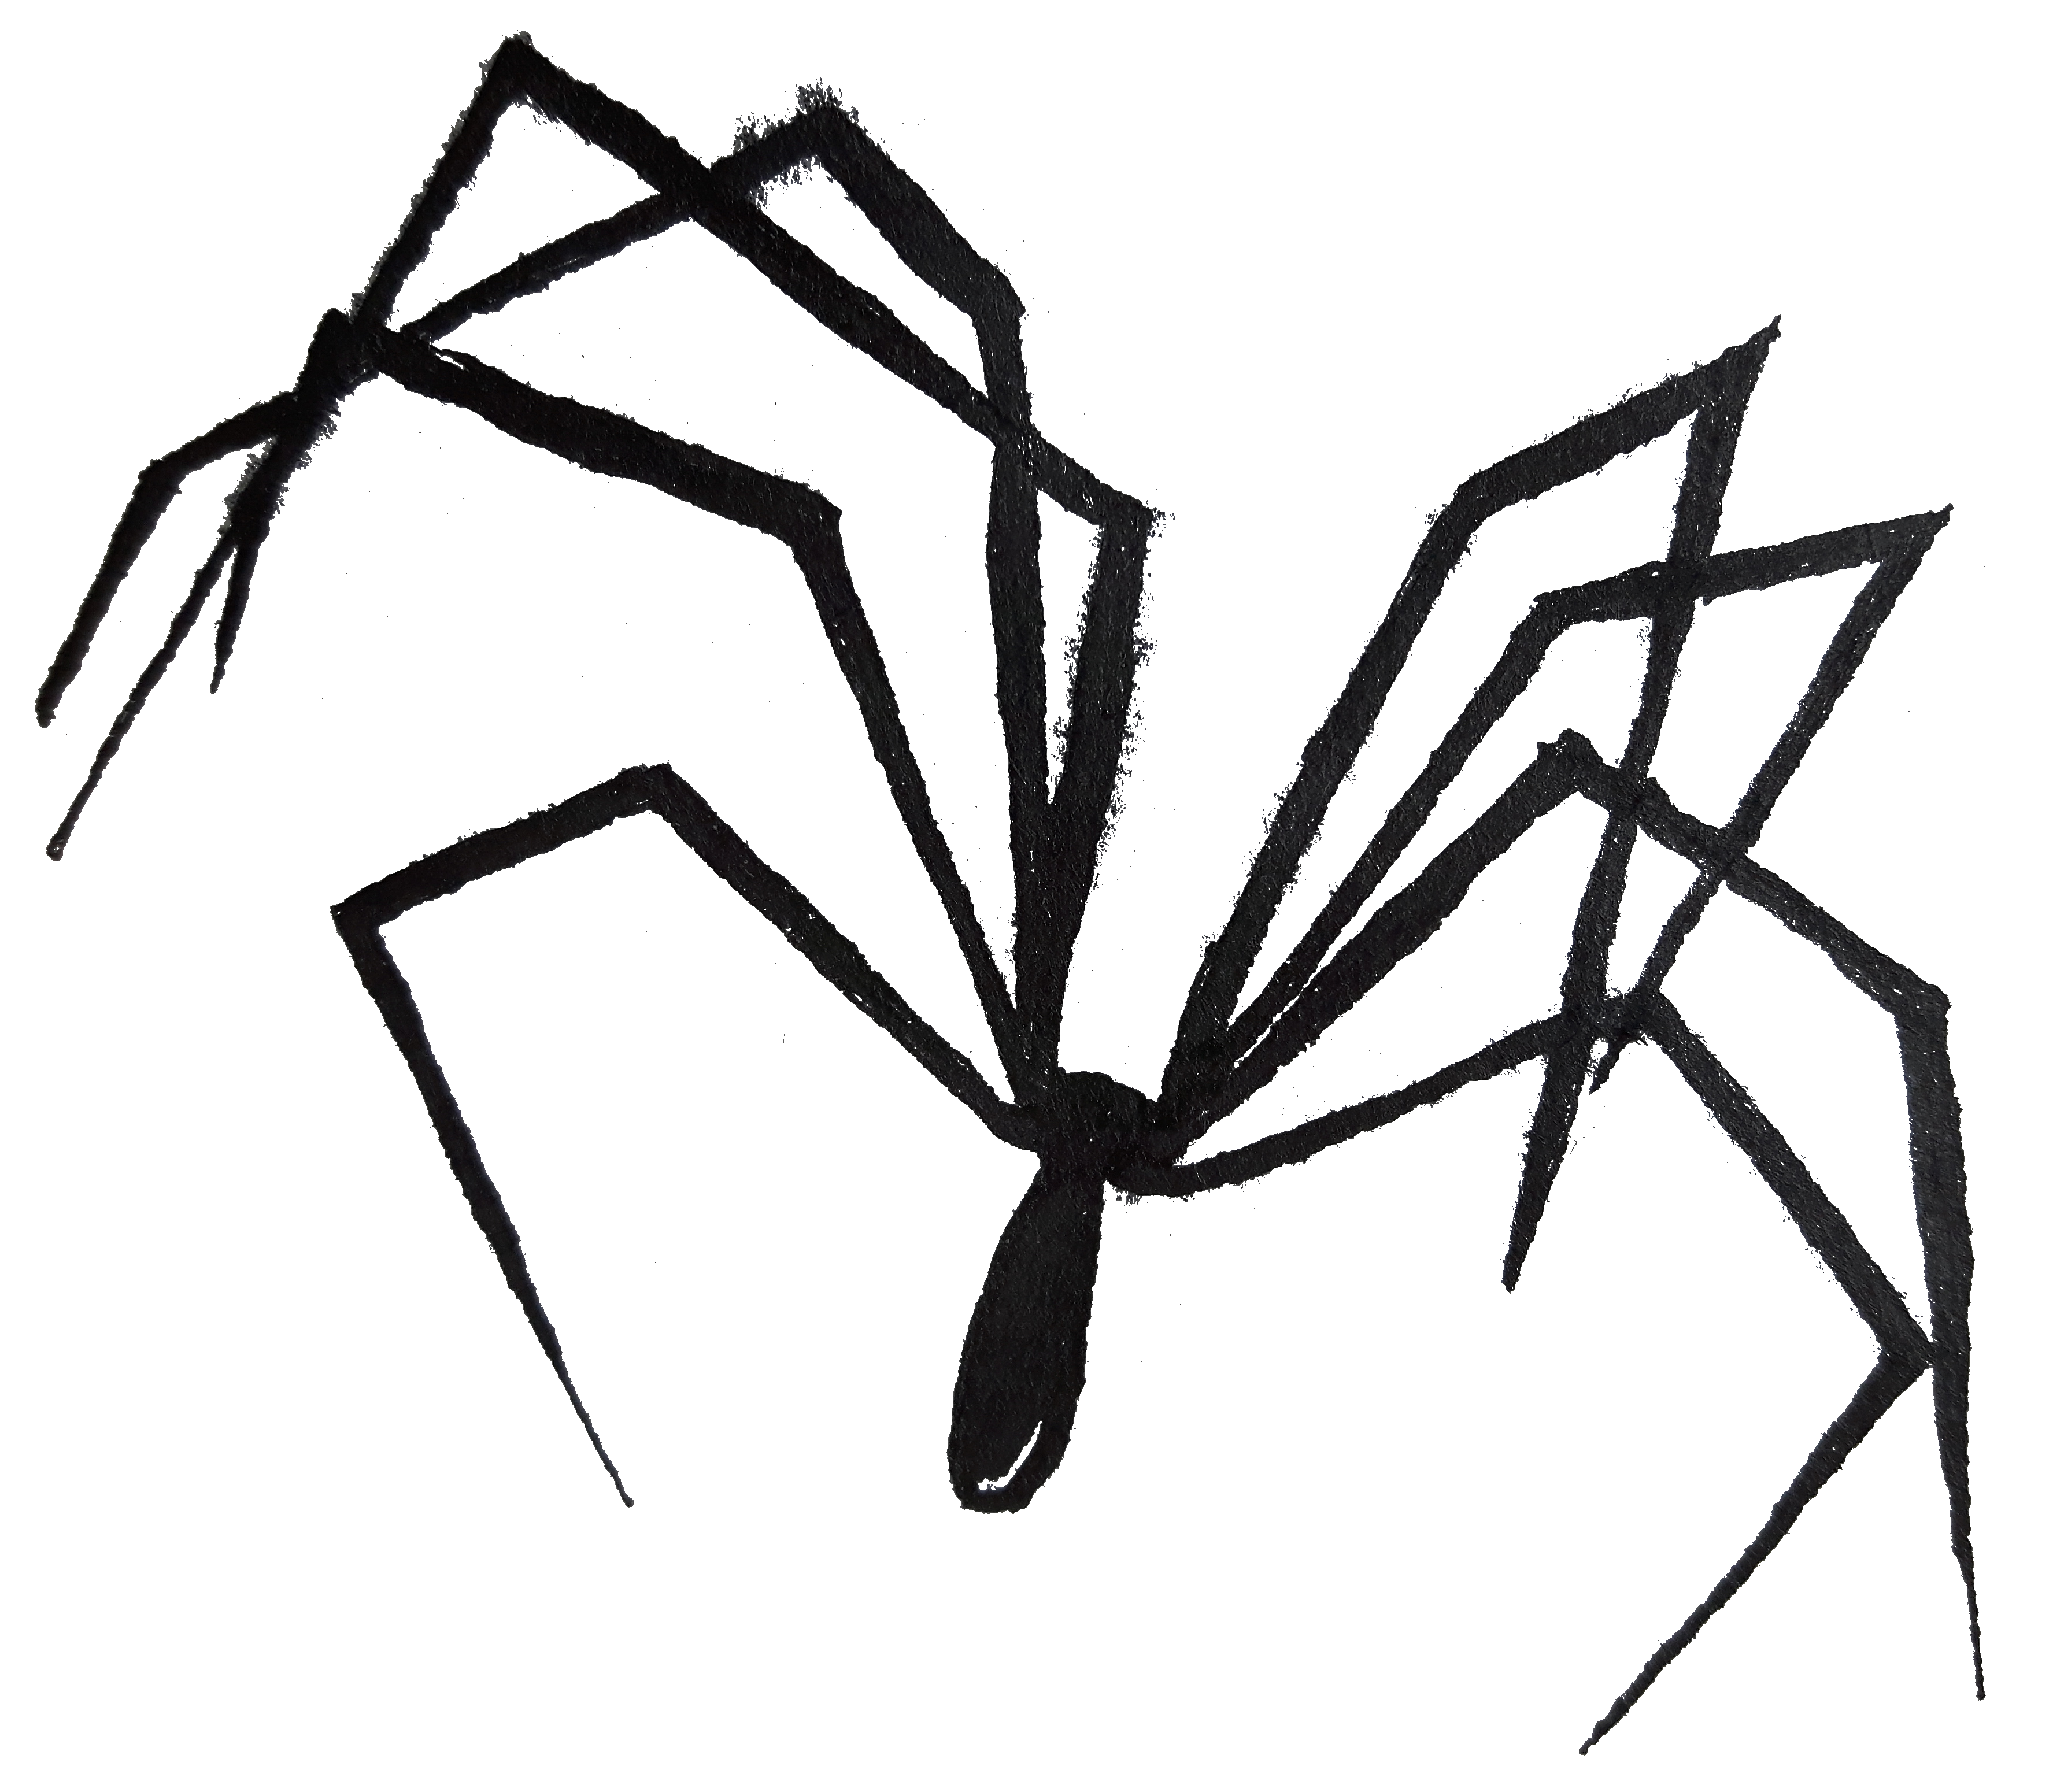 Ink drawing of a cellar spider